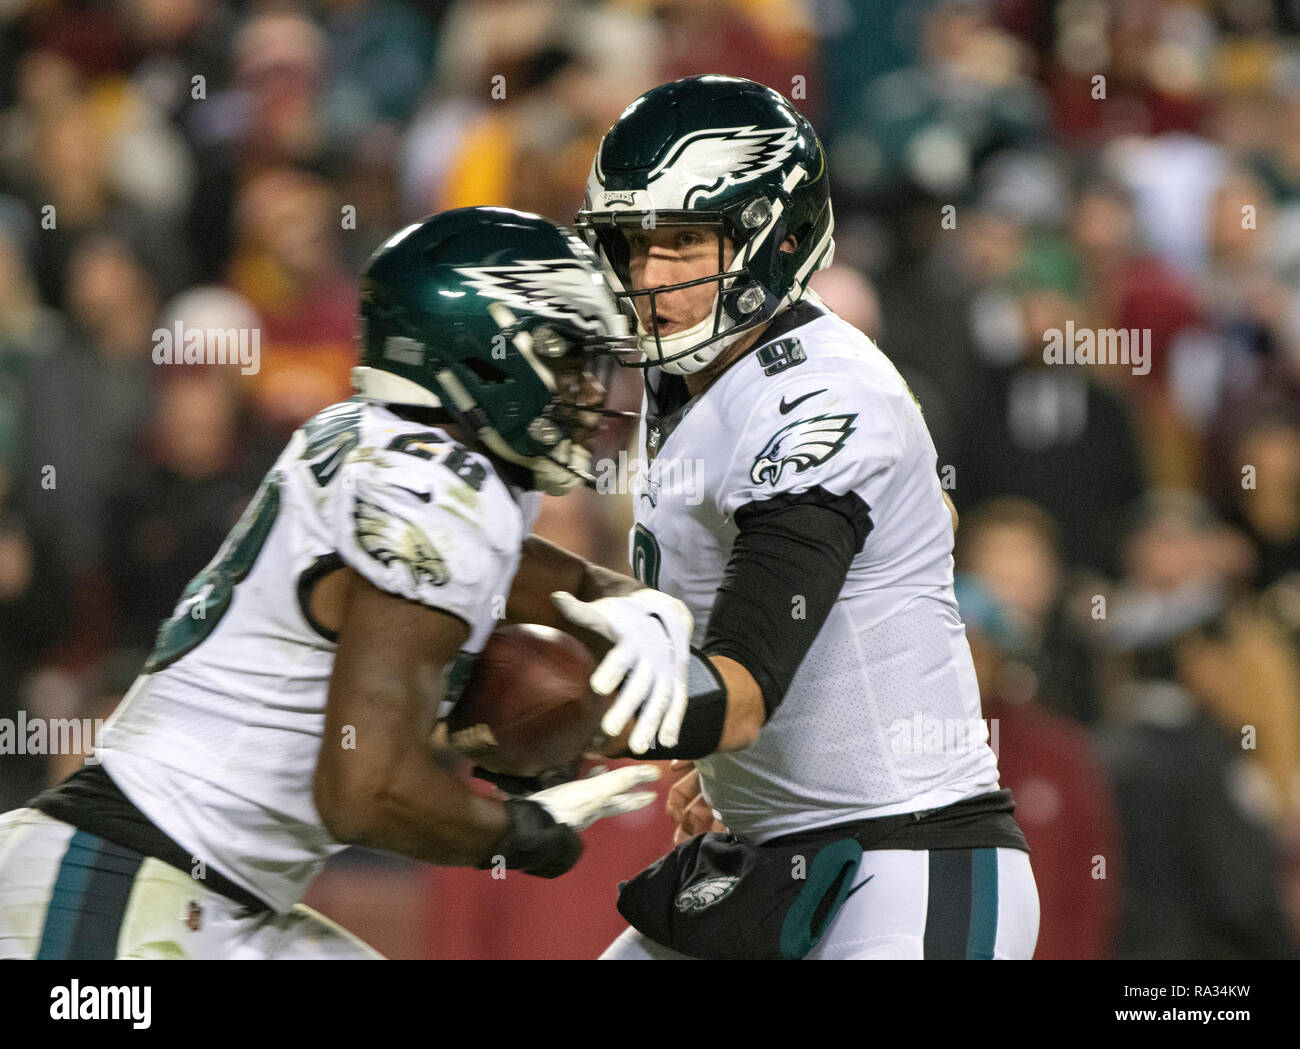 Philadelphia Eagles quarterback Nick Foles (9) hands-off to running back Wendell Smallwood (28) in fourth quarter action against the Washington Redskins at FedEx Field in Landover, Maryland on December 30, 2018. The Eagles won the game 24 - 0 and their victory coupled with the Viking loss allowed them to advance to the NFC playoffs. Credit: Ron Sachs/CNP /MediaPunch - Stock Image